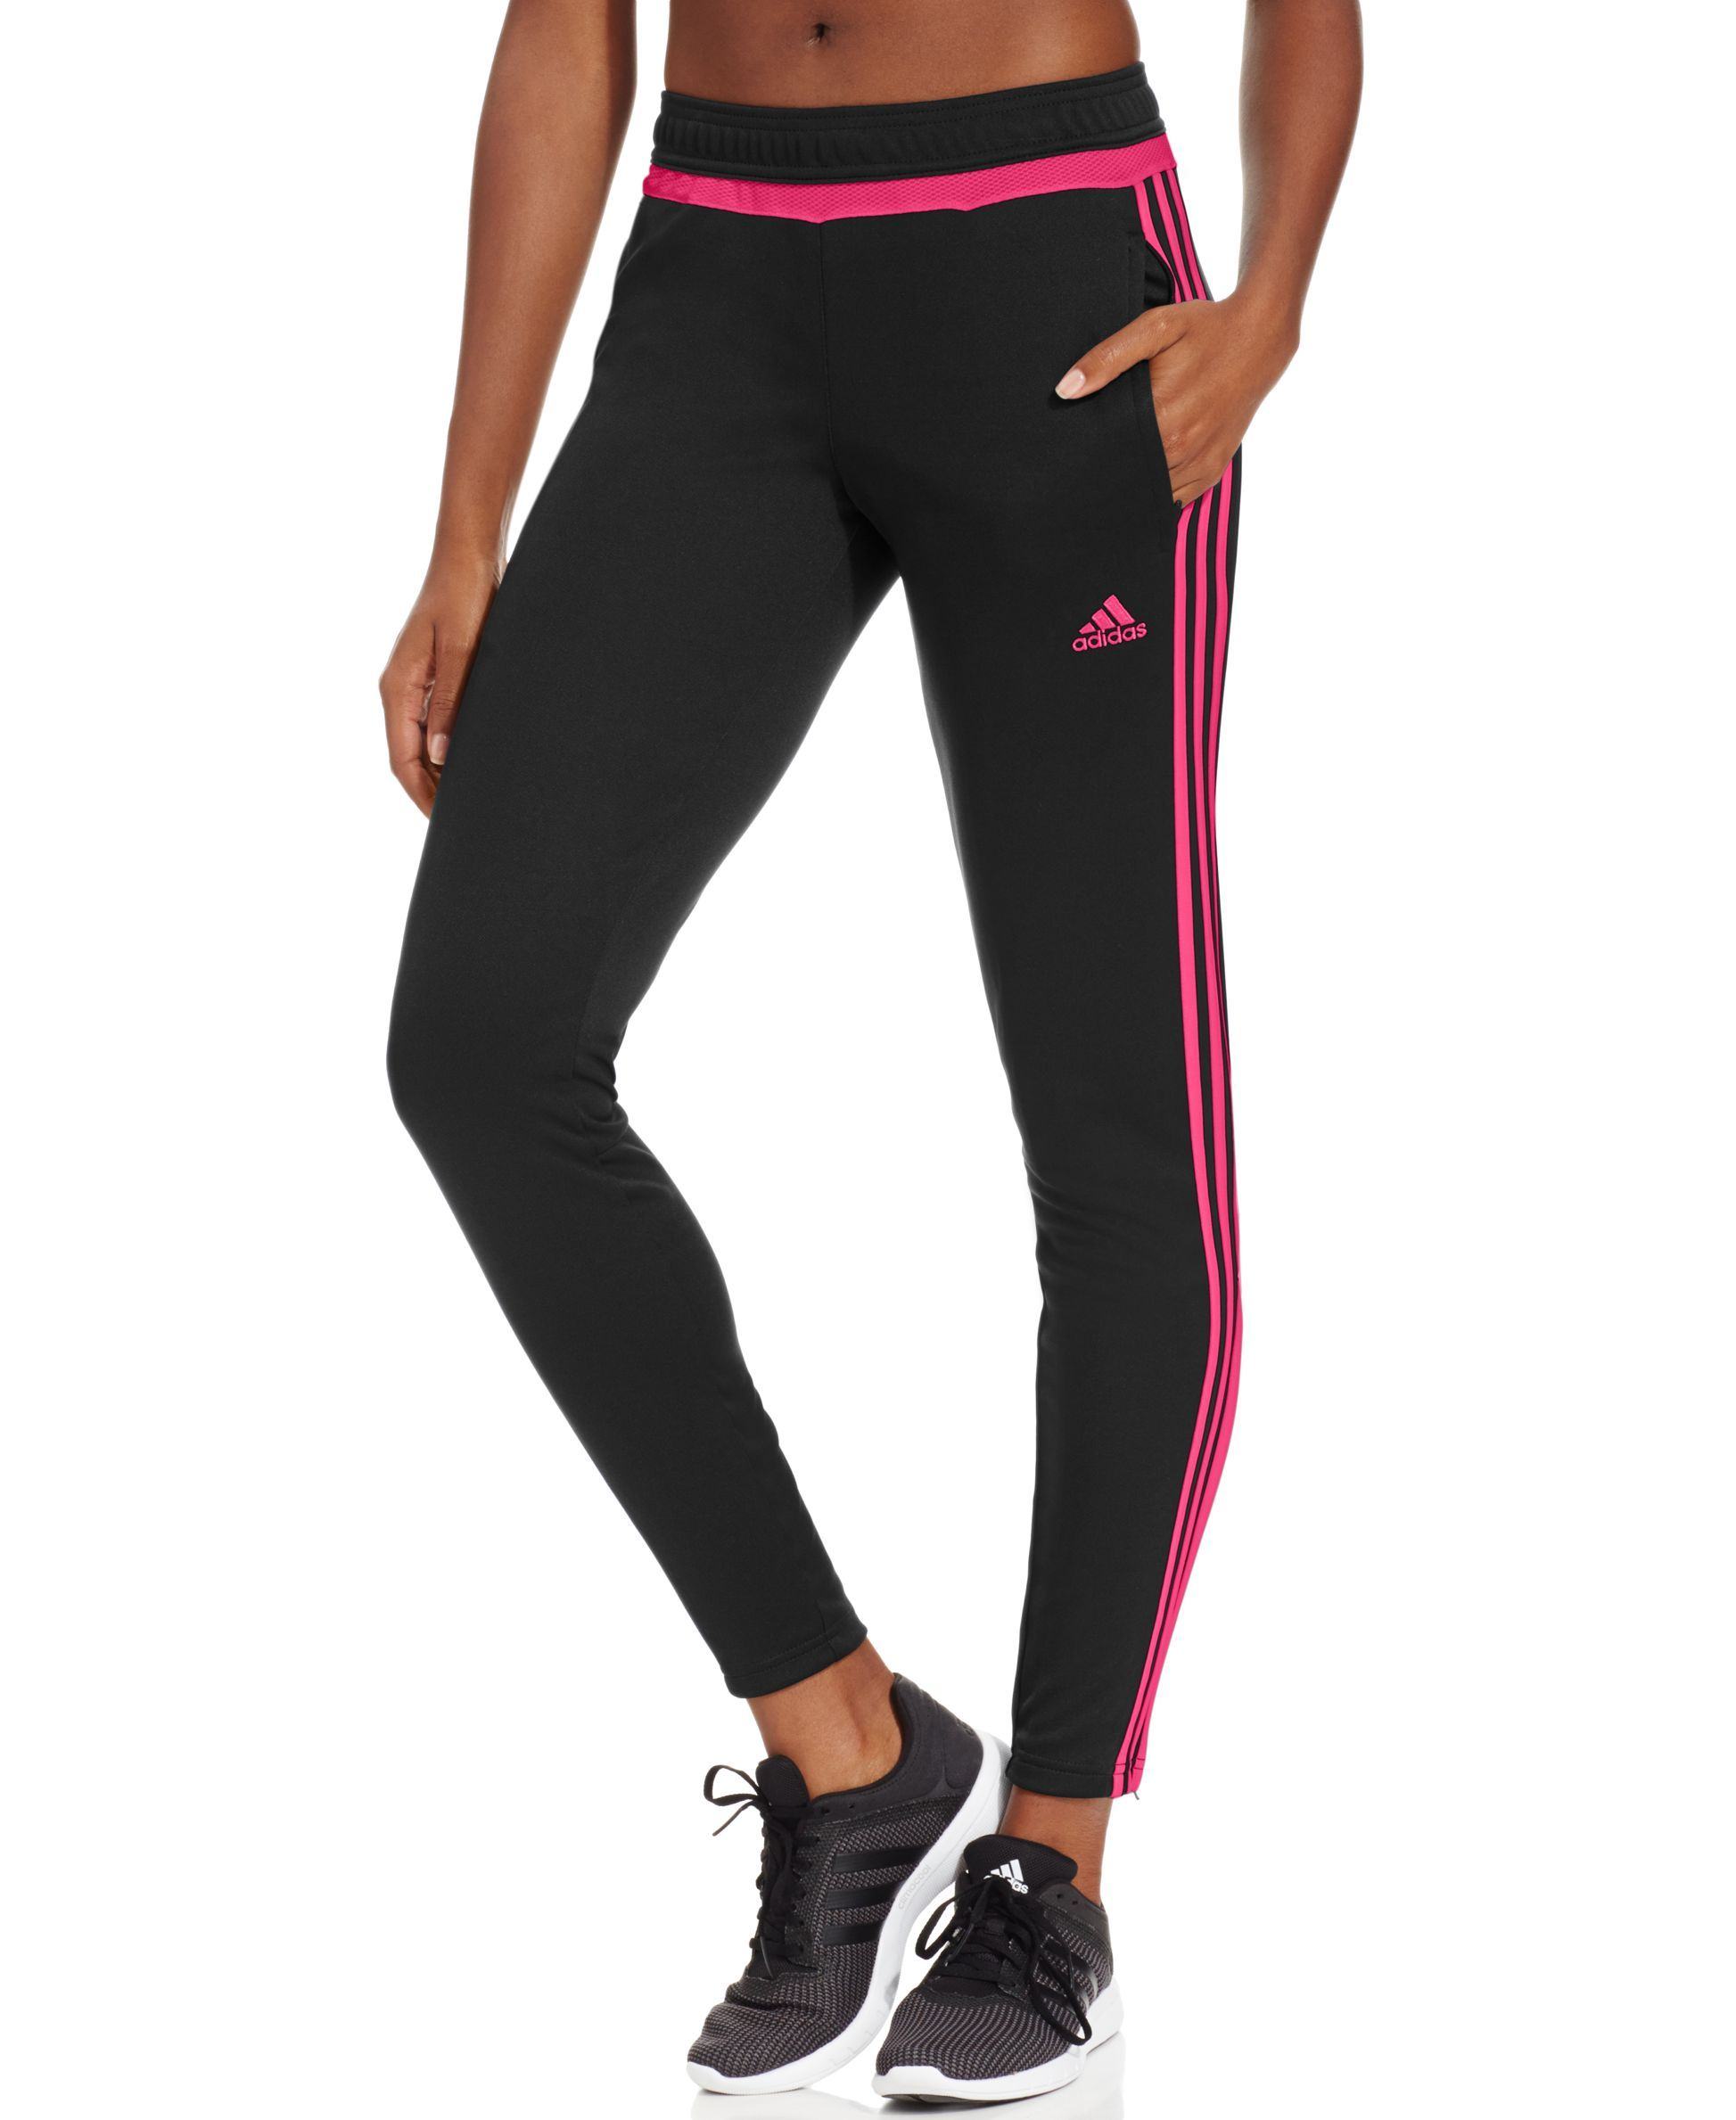 The slim, tapered fit of the Adidas Tiro 15 Pant lets you